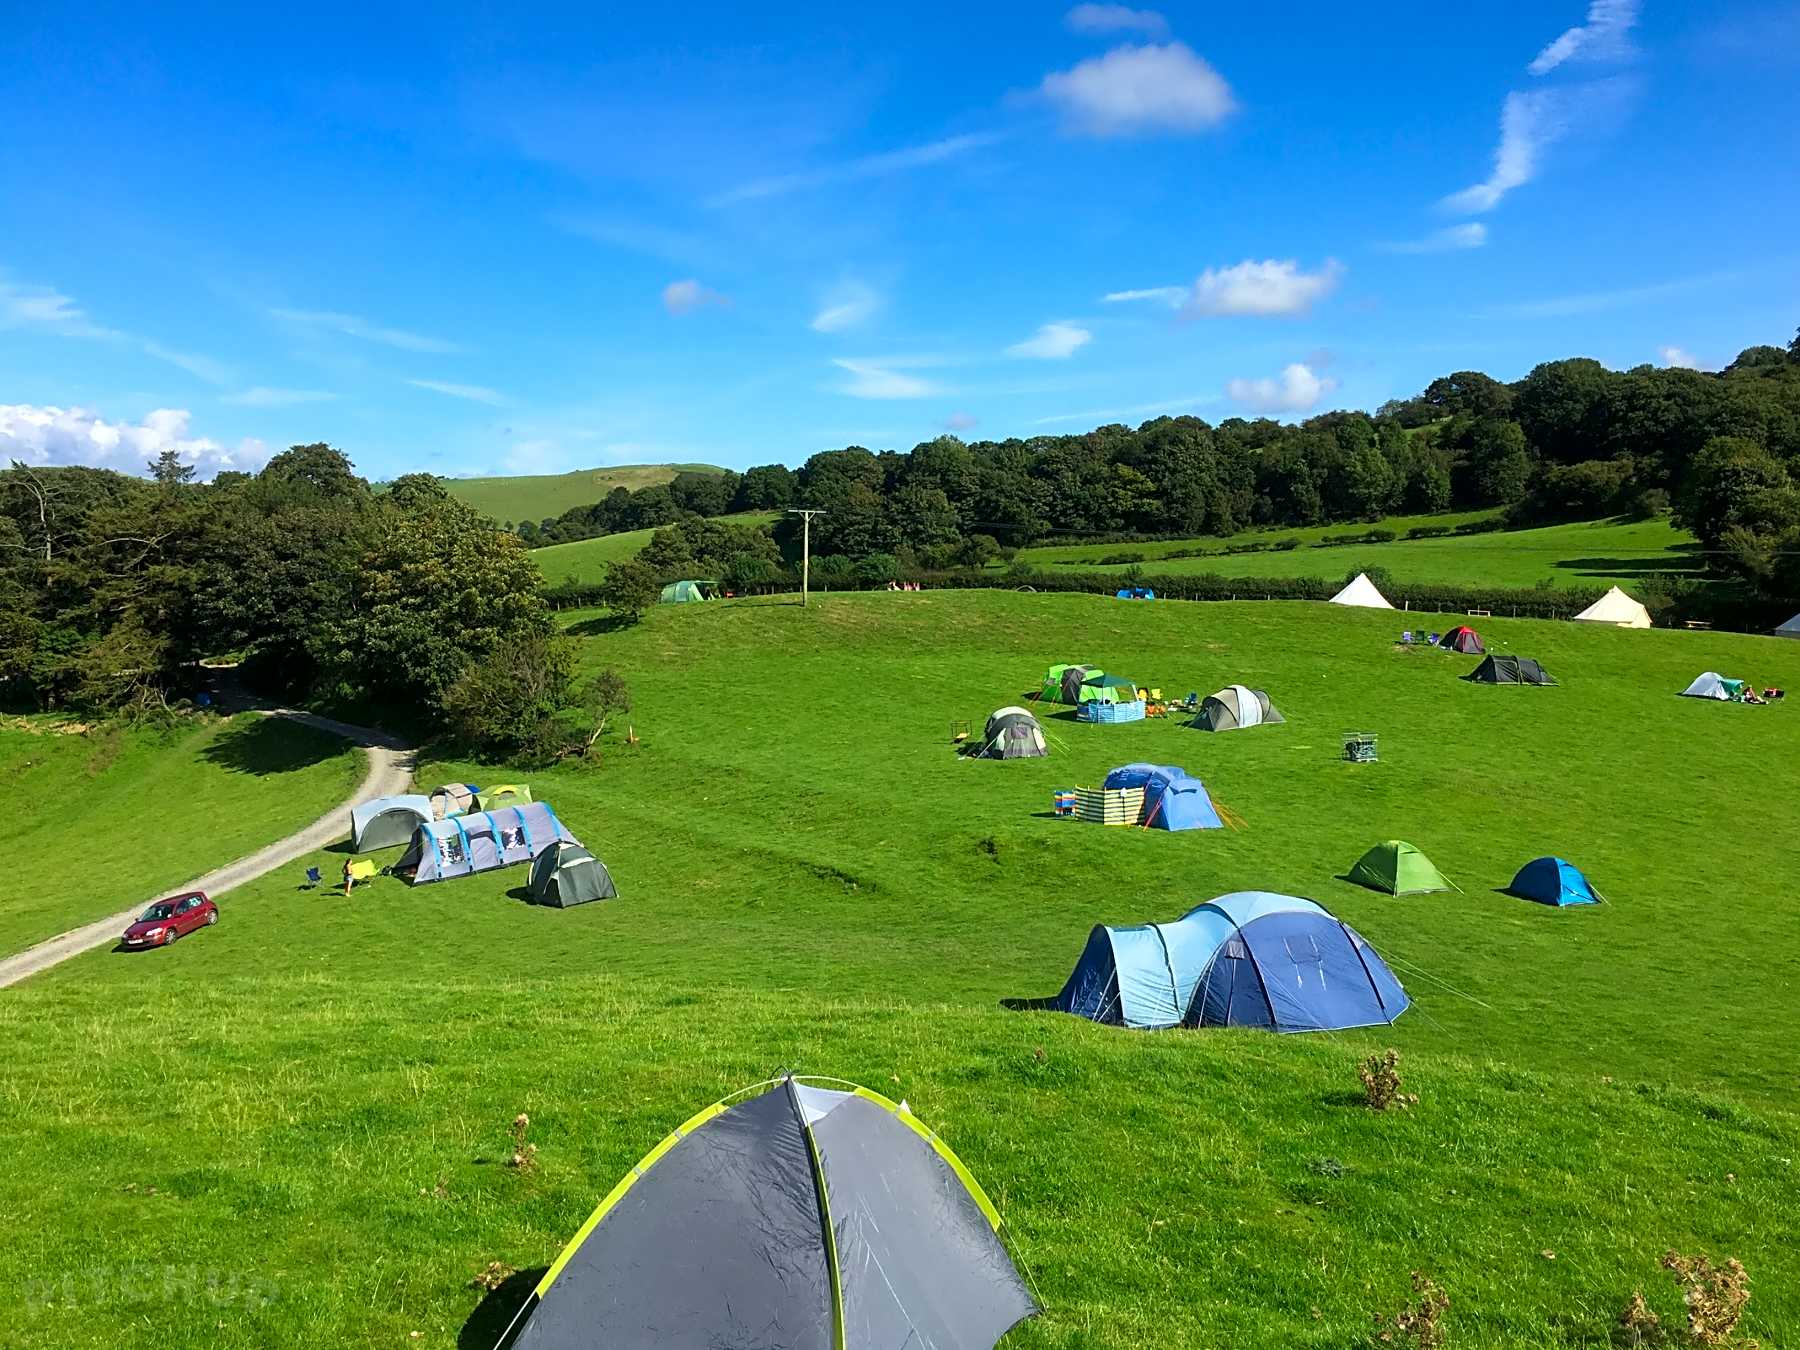 Wild camping | Best Campsites in Wales 2021 - Book 49 ...